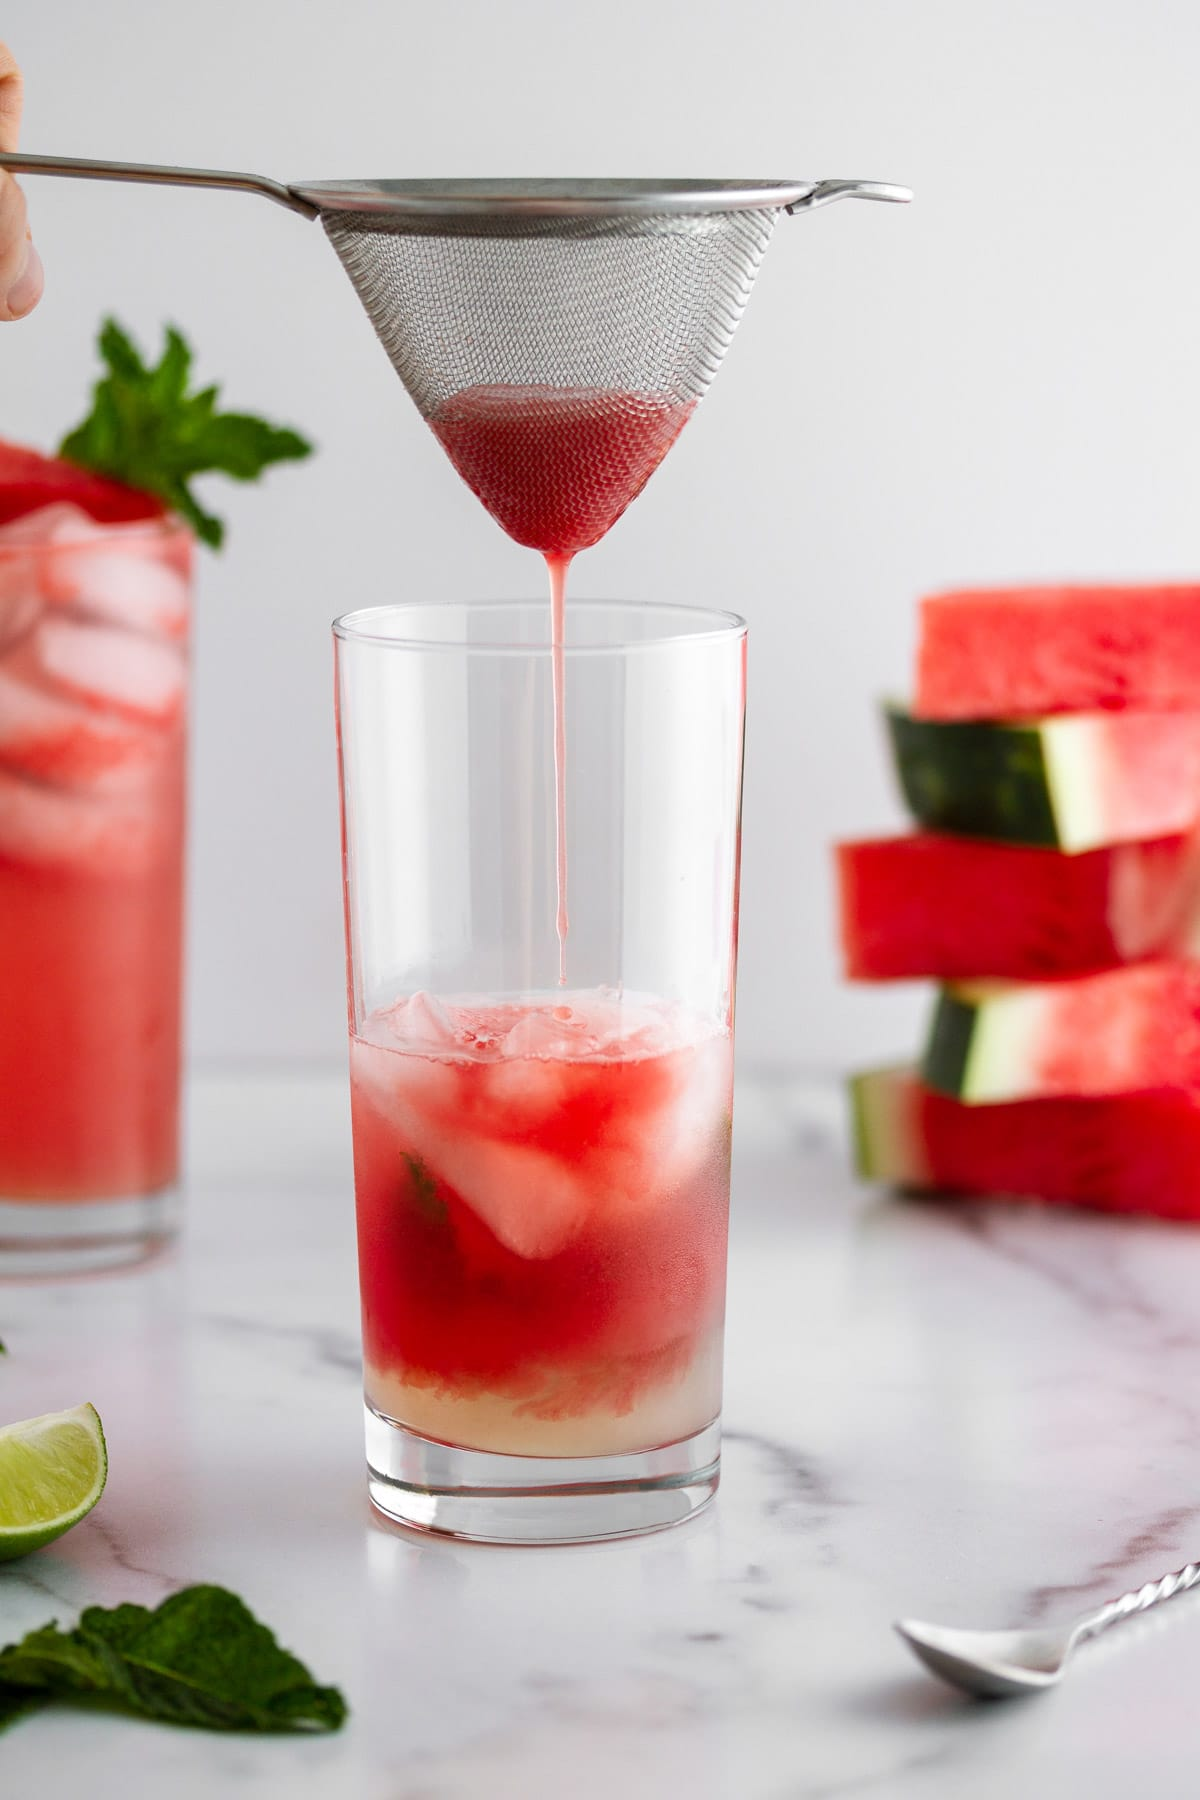 straining watermelon juice into a glass